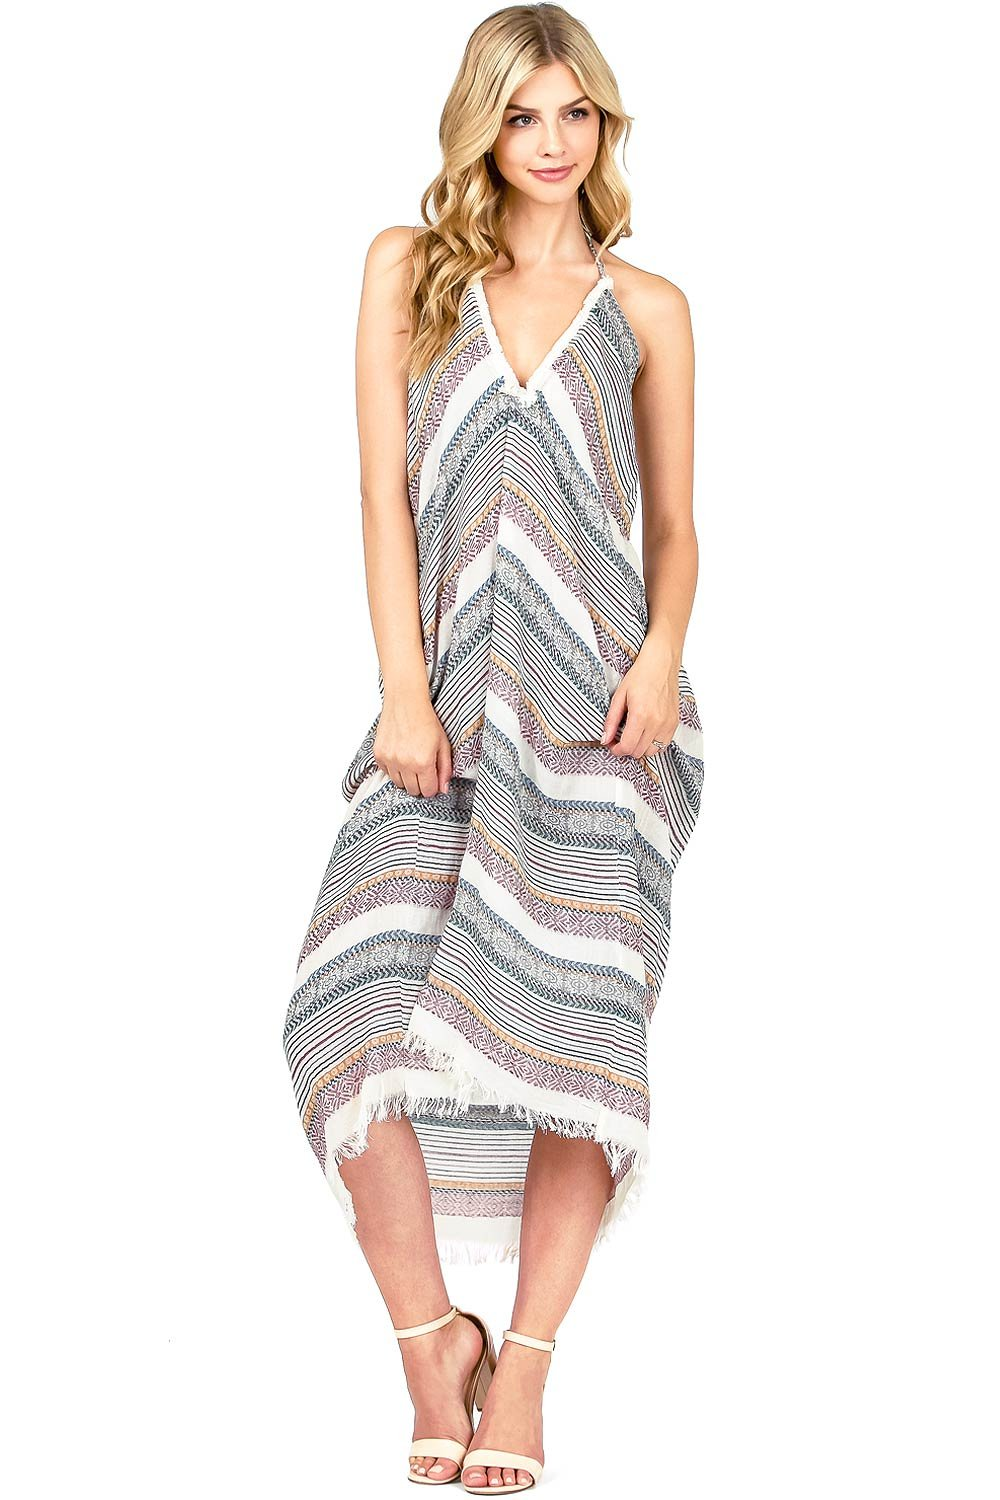 Love Stitch Women's Flowy Light Kinit Midi Dress (S/M, Wine)